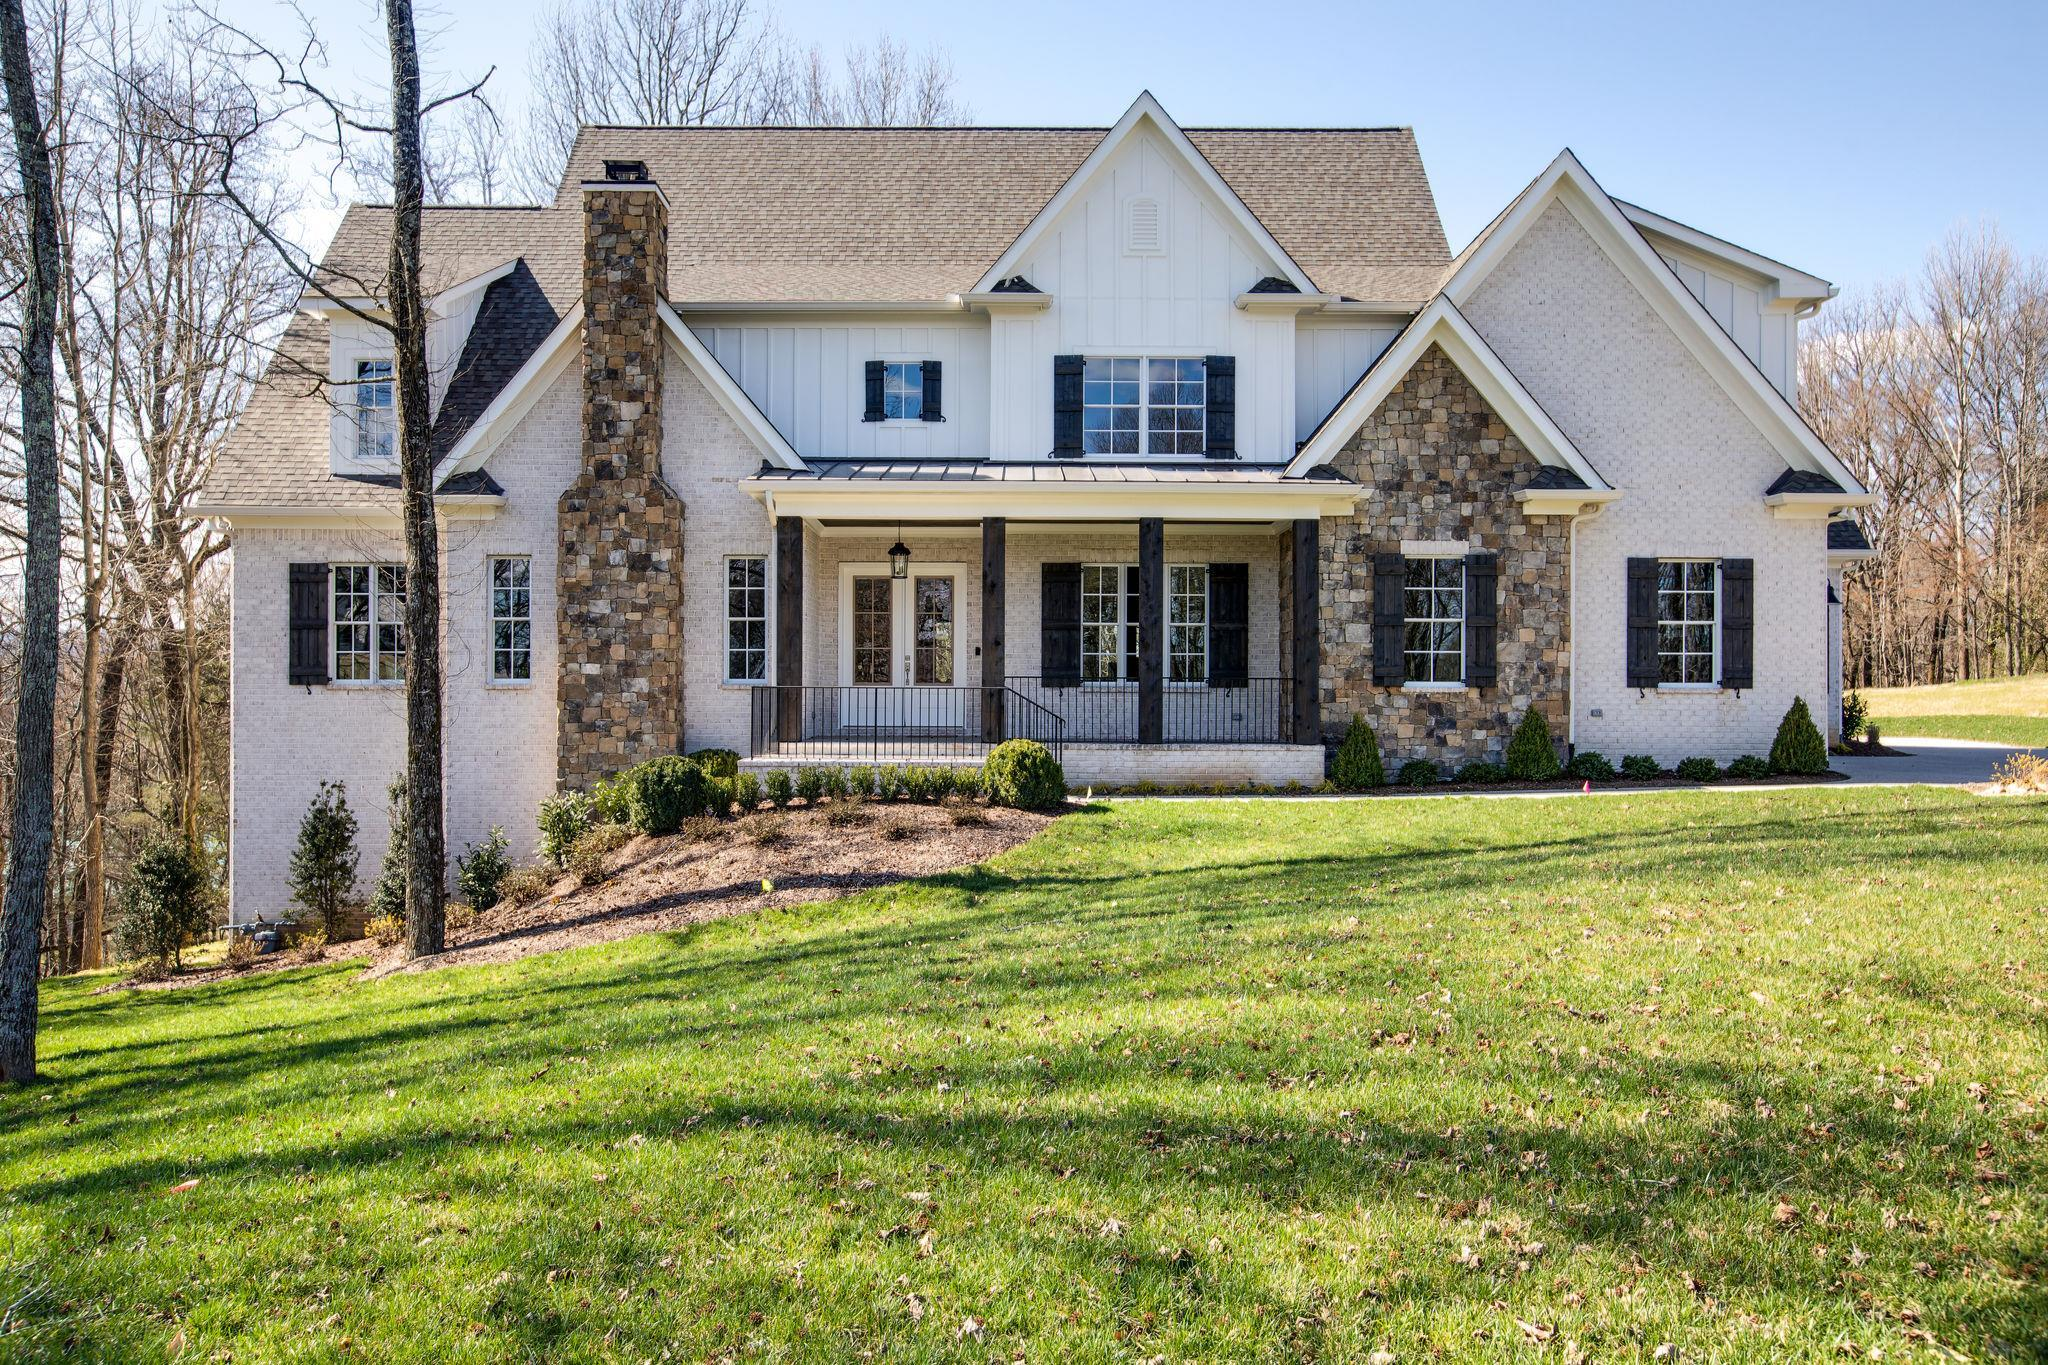 1164 Saddle Springs Dr, Thompsons Station, TN 37179 - Thompsons Station, TN real estate listing